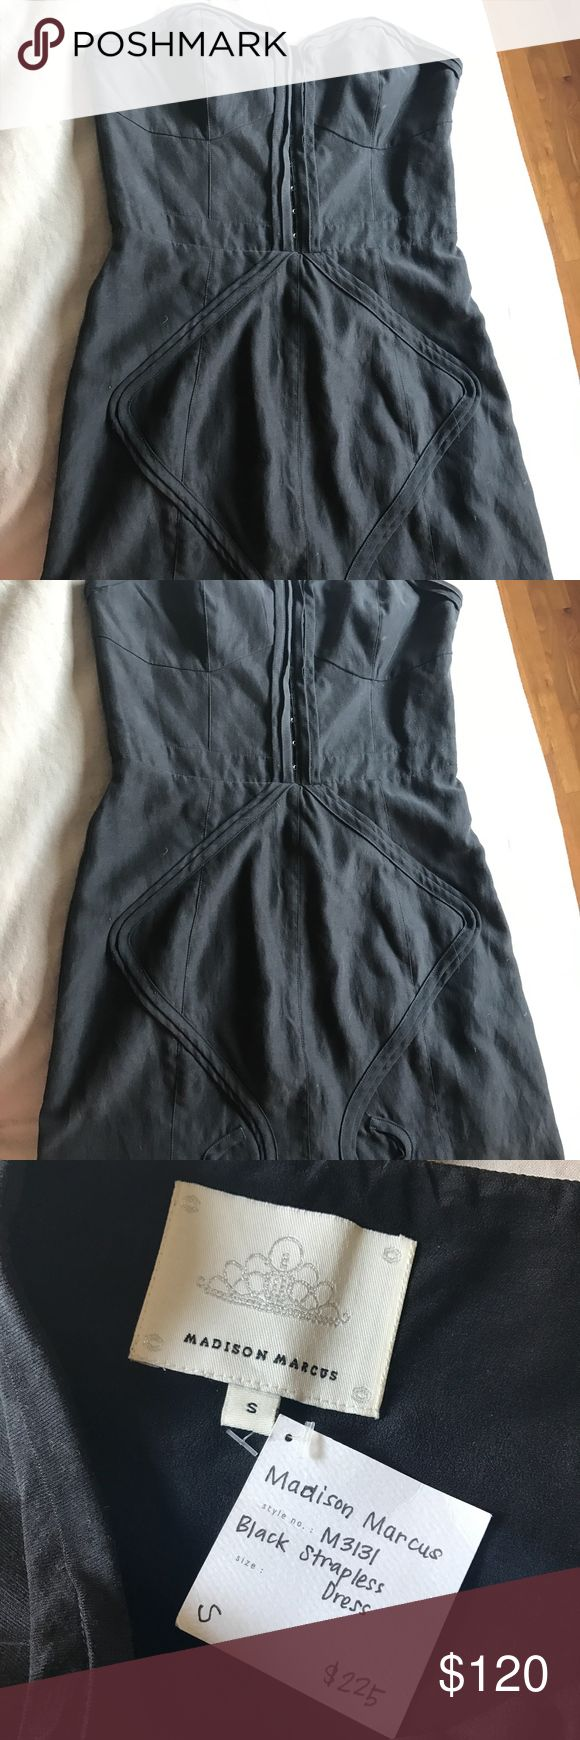 Madison Marcus Black Strapless Dress Brand new, never worn with tag still attached. Size small. Located in Culver City, CA. Madison Marcus Dresses Strapless